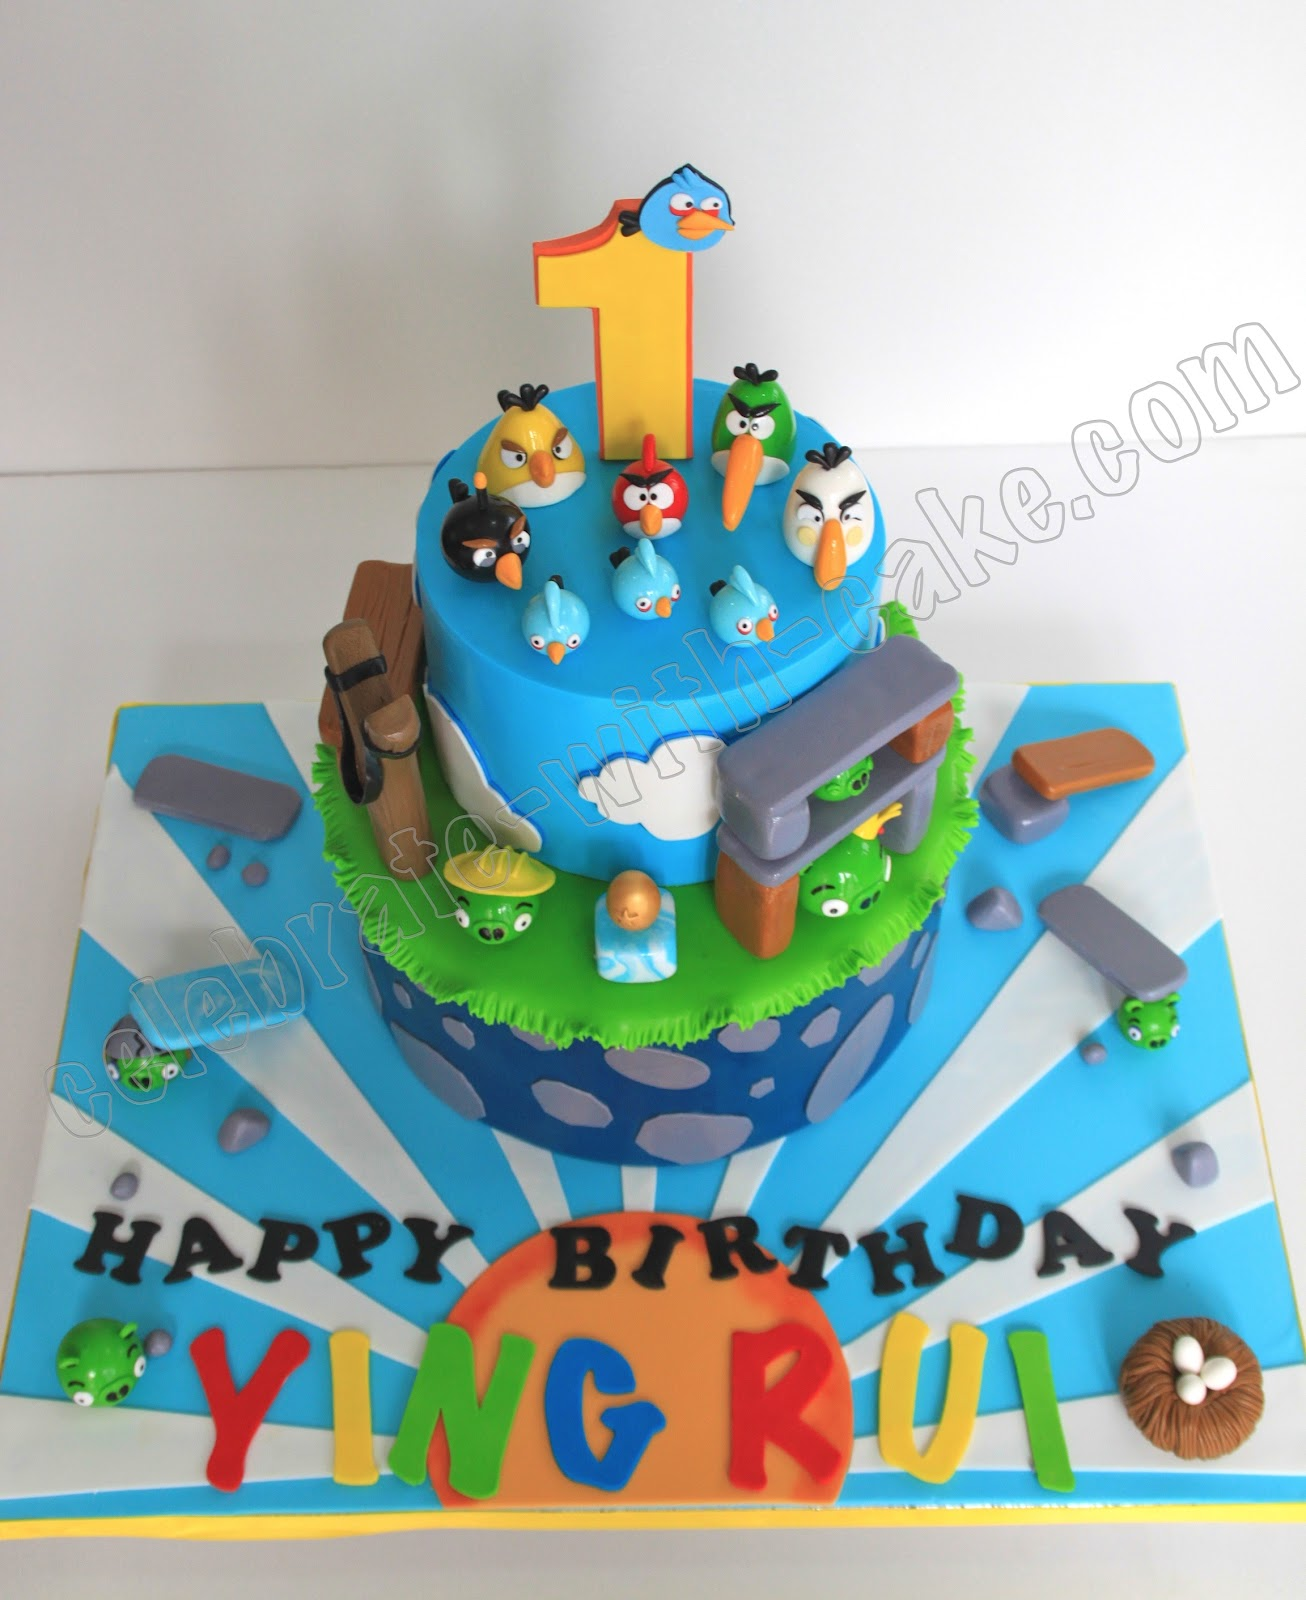 Images Of Angry Birds Cake : Celebrate with Cake!: Angry Birds Cake